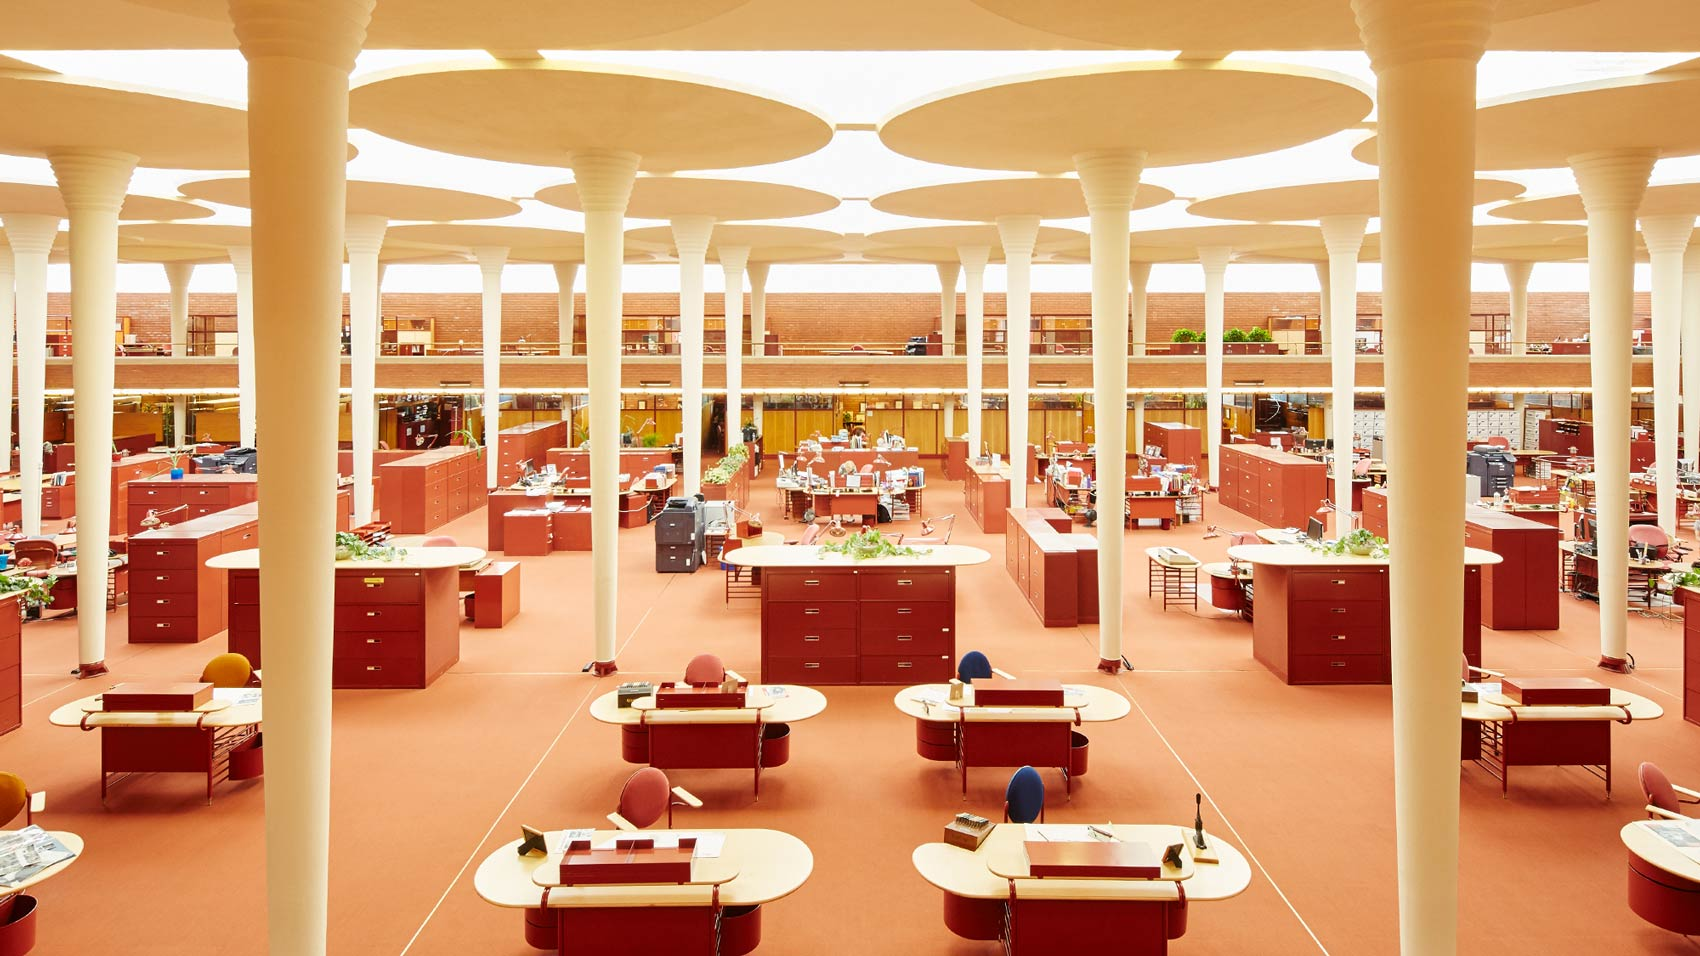 The Great Workroom in SC Johnson Frank Lloyd Wright-designed Administration Building